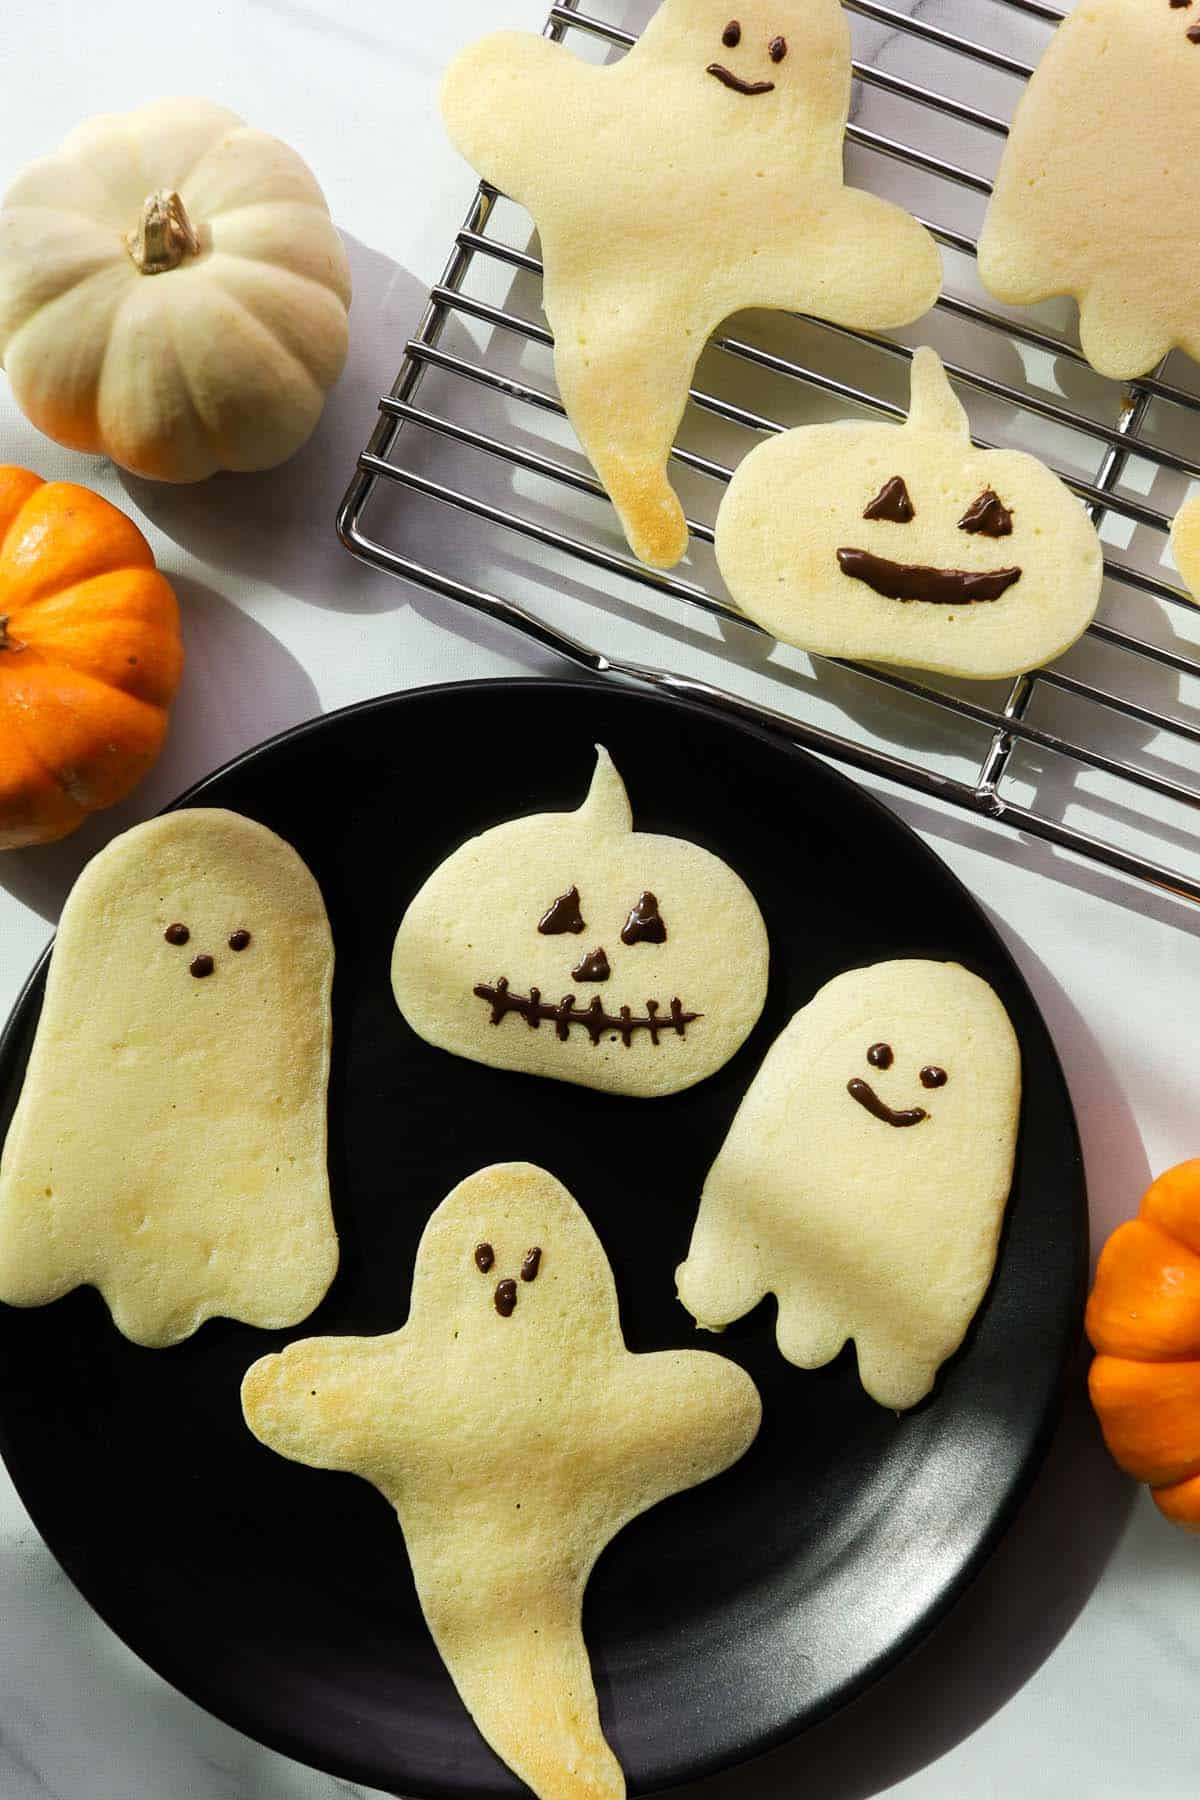 Pumpkin and ghost shaped pancakes on a plate.